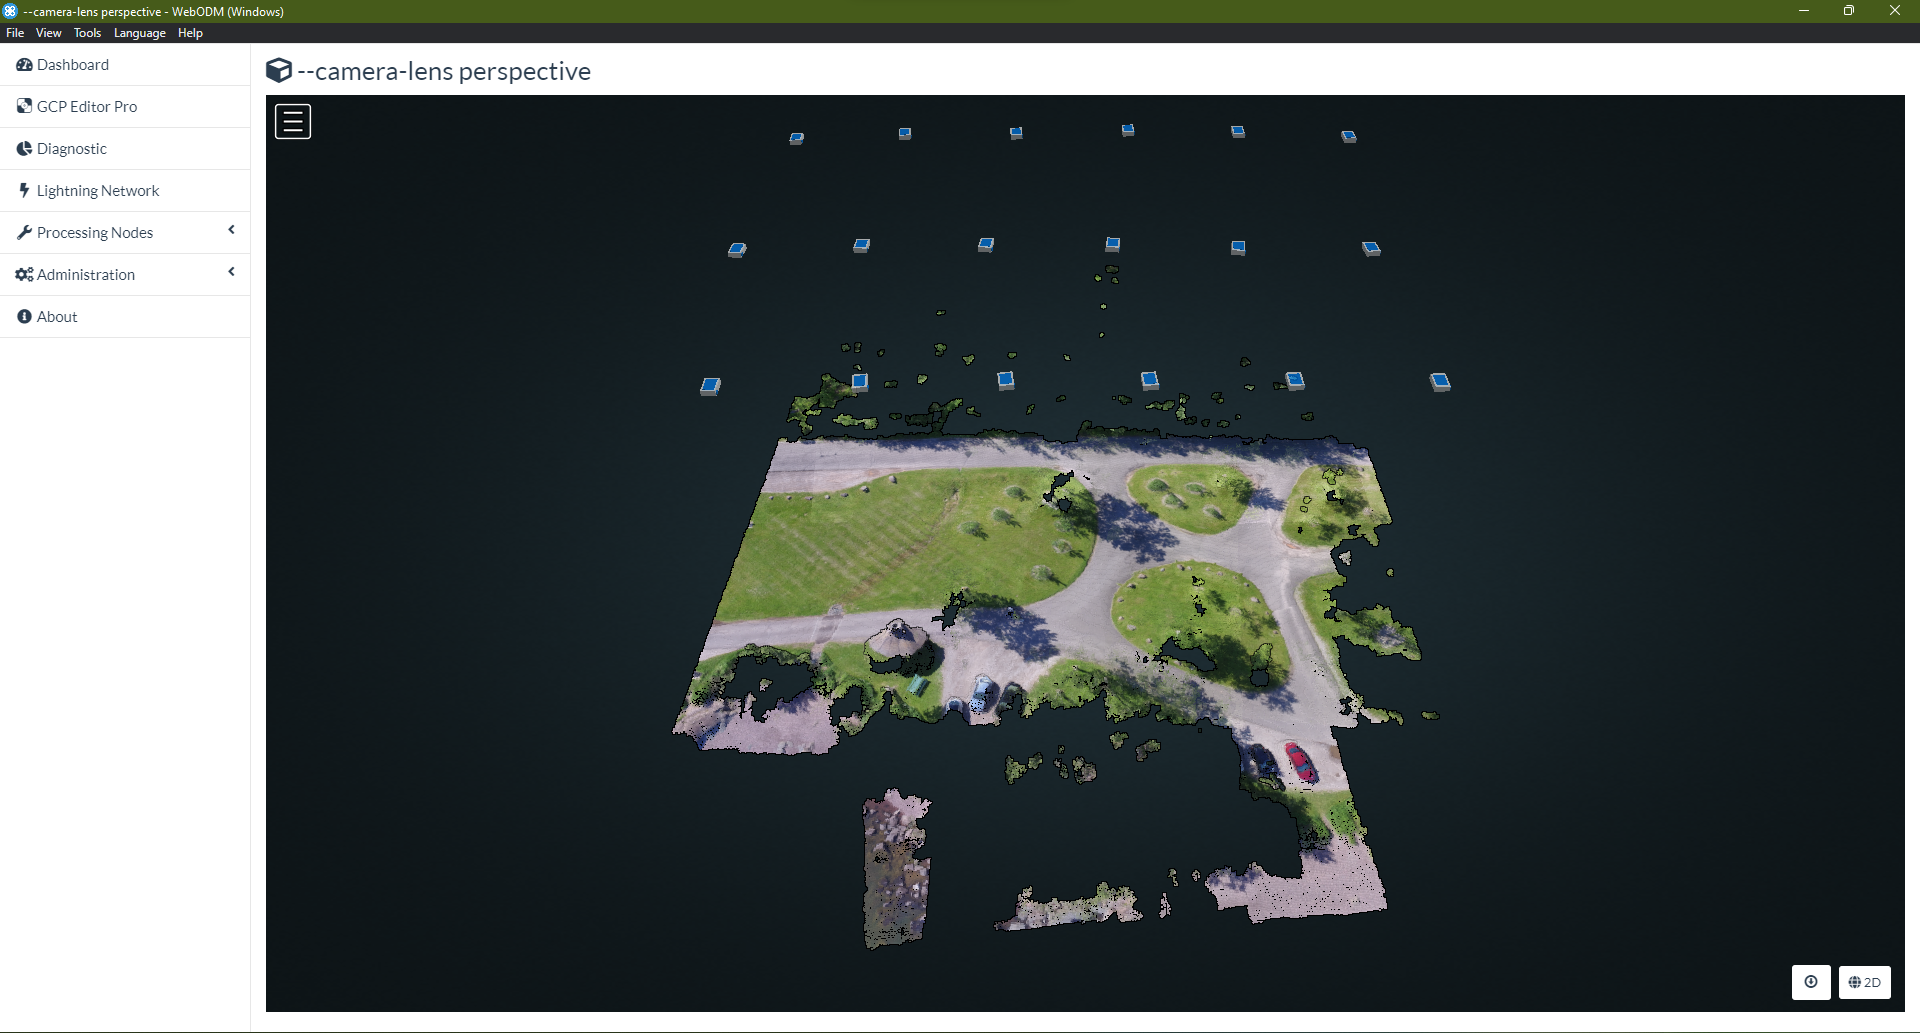 Rectilinear data rendered by ``perspective`` Camera Lens Model